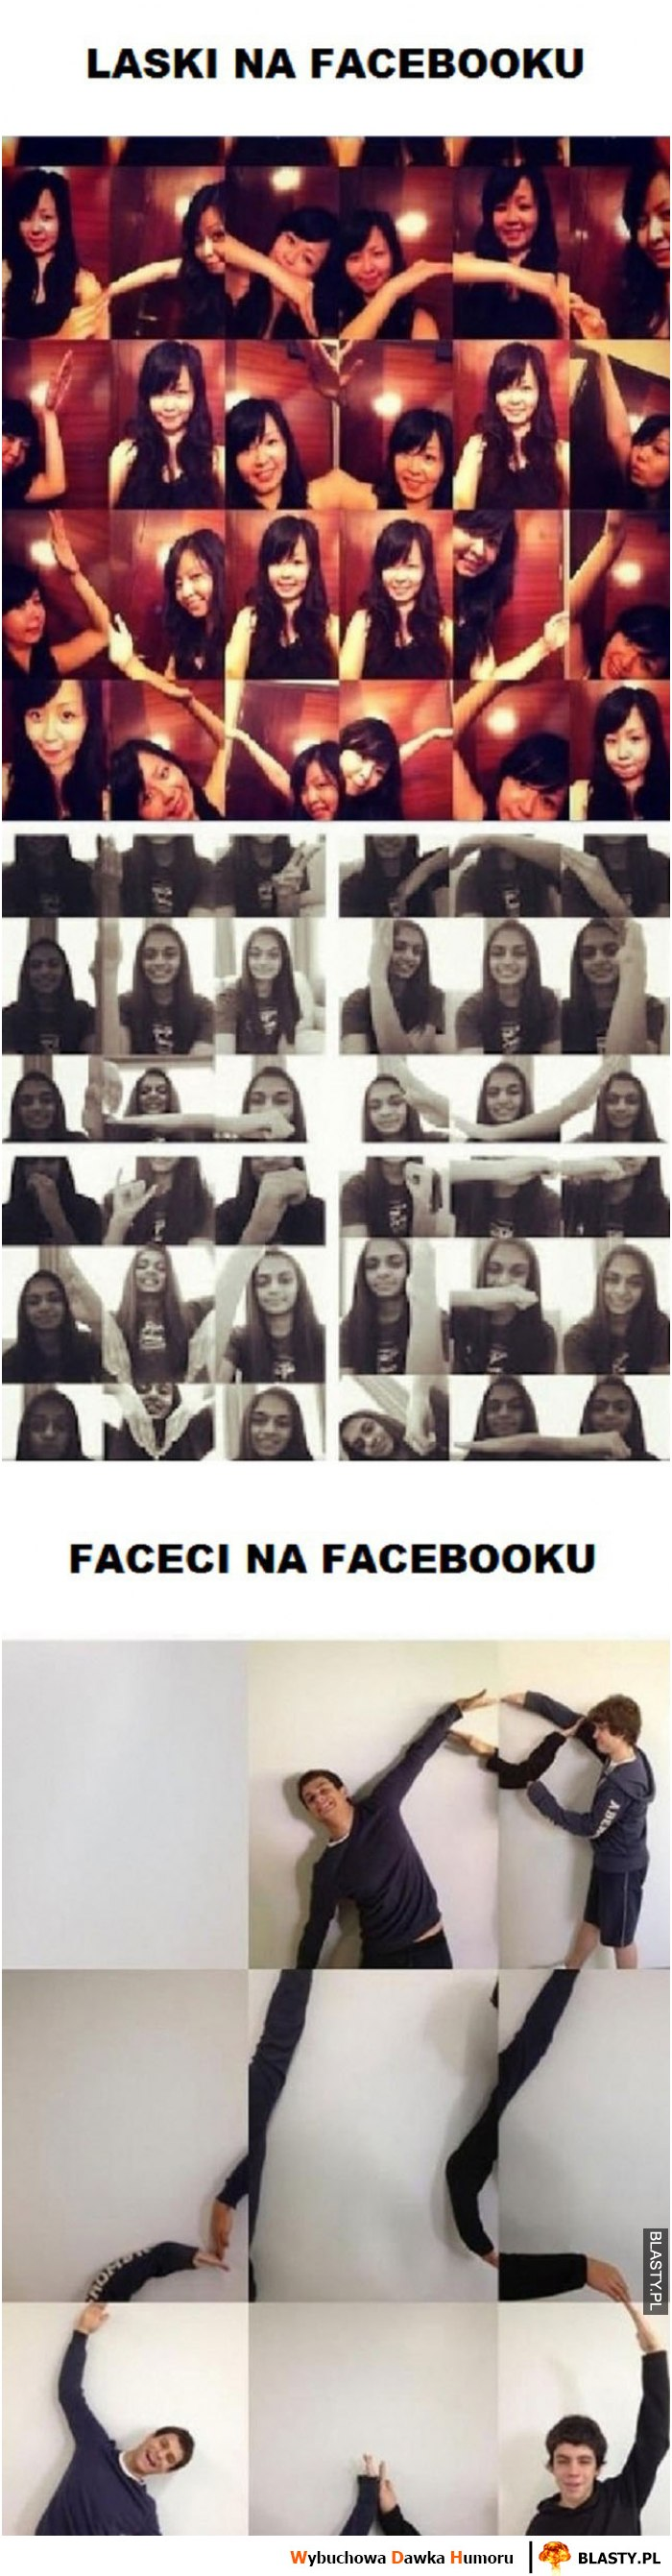 Faceci VS laski